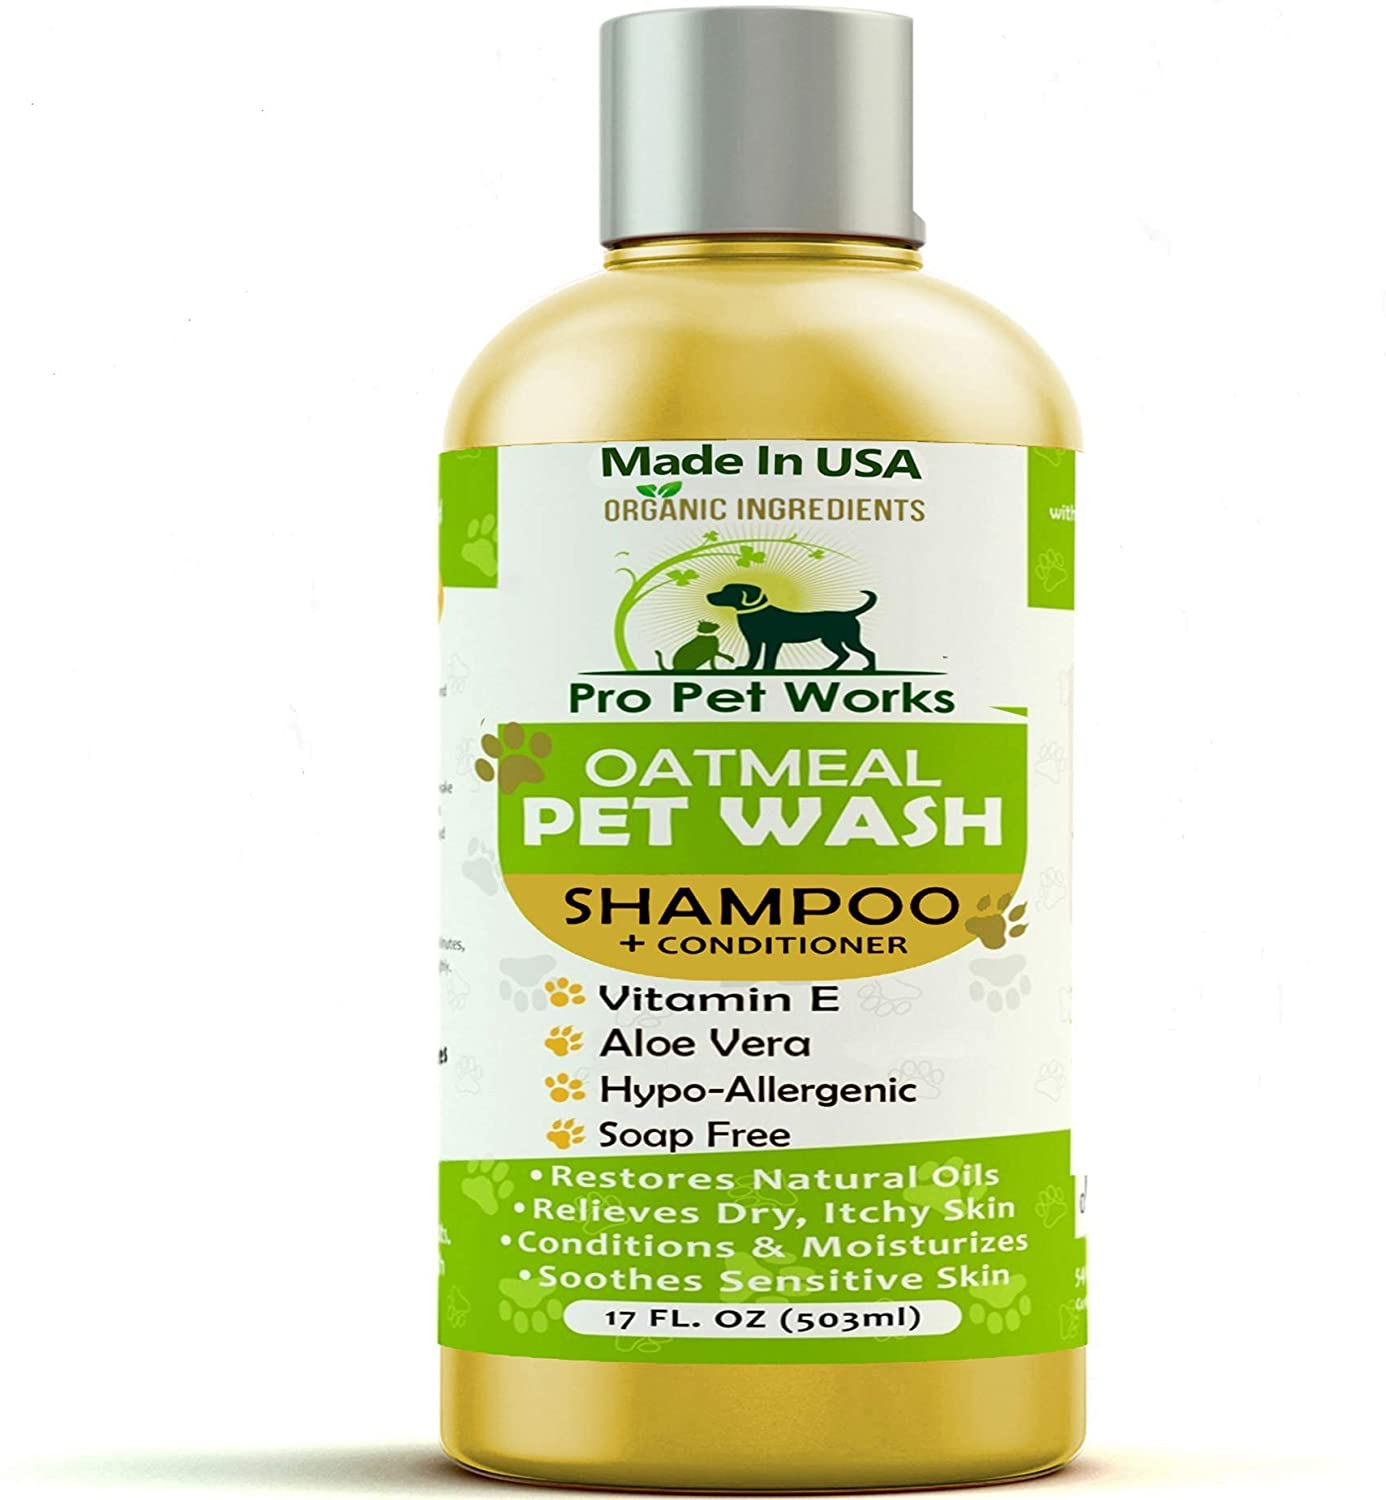 Pro Pet Works All Natural Organic Oatmeal Pet Shampoo Plus Conditioner - Hypoallergenic and Soap Free Blend with Aloe Gel for Allergies & Sensitive Skin- 17oz